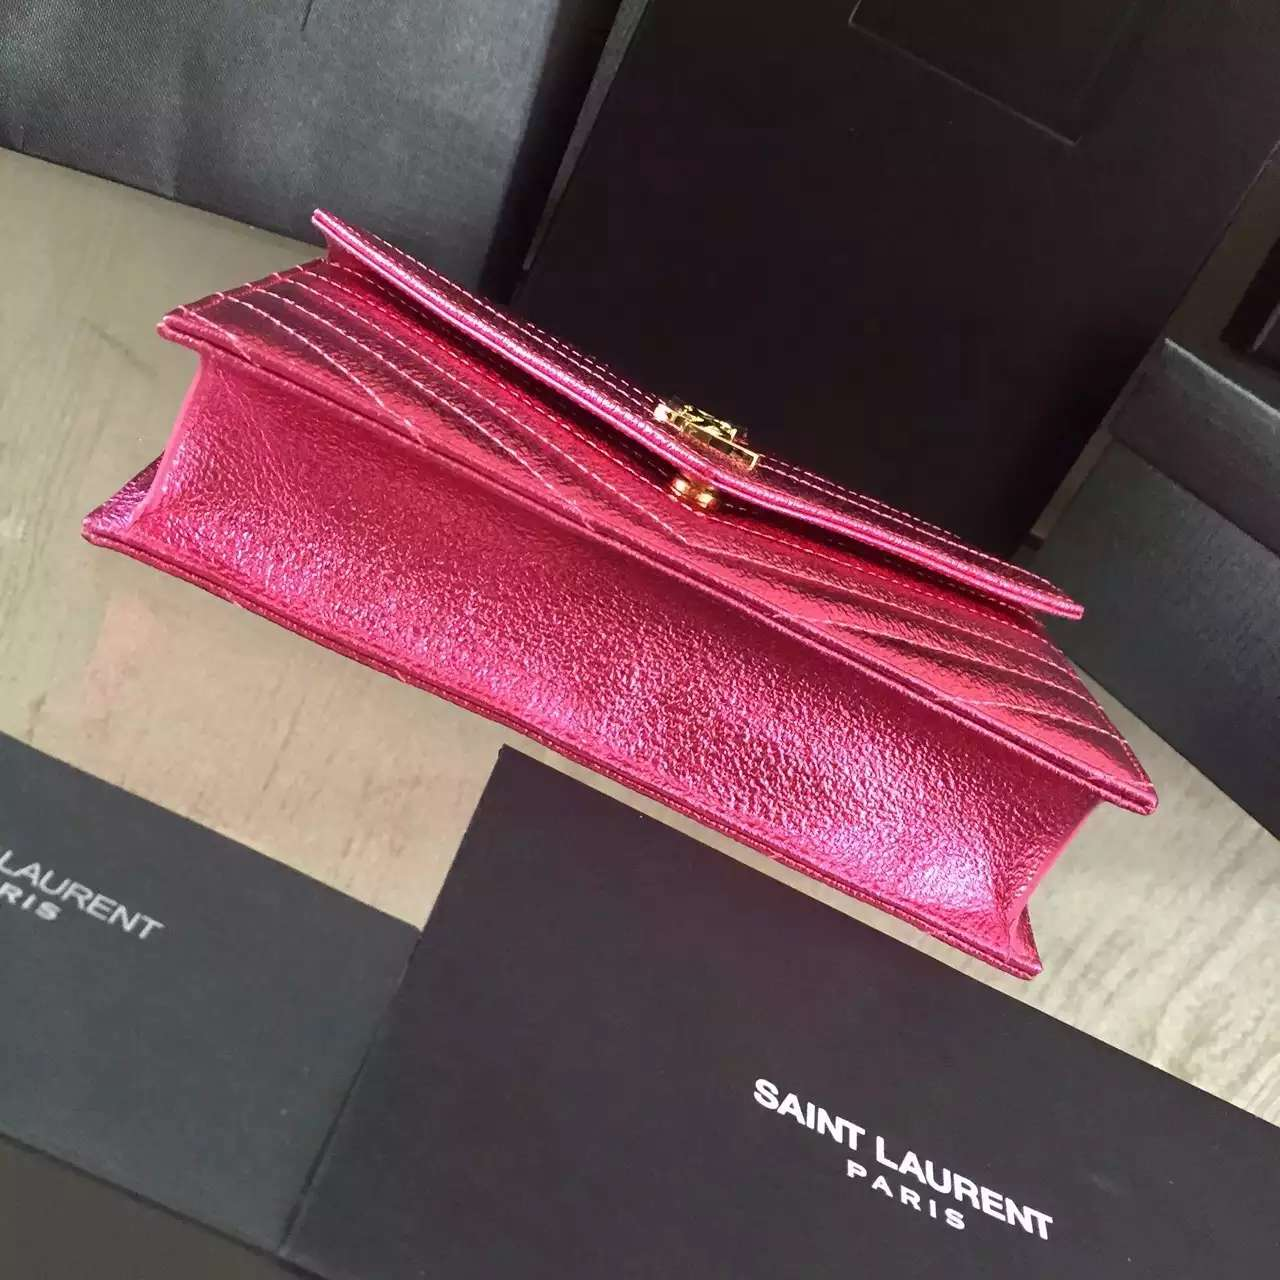 2016 Cheap YSL Out Sale with Free Shipping-Saint Laurent Monogram Envelope Chain Wallet in Lipstick Fuchsia Grained Matelasse Metallic Leather